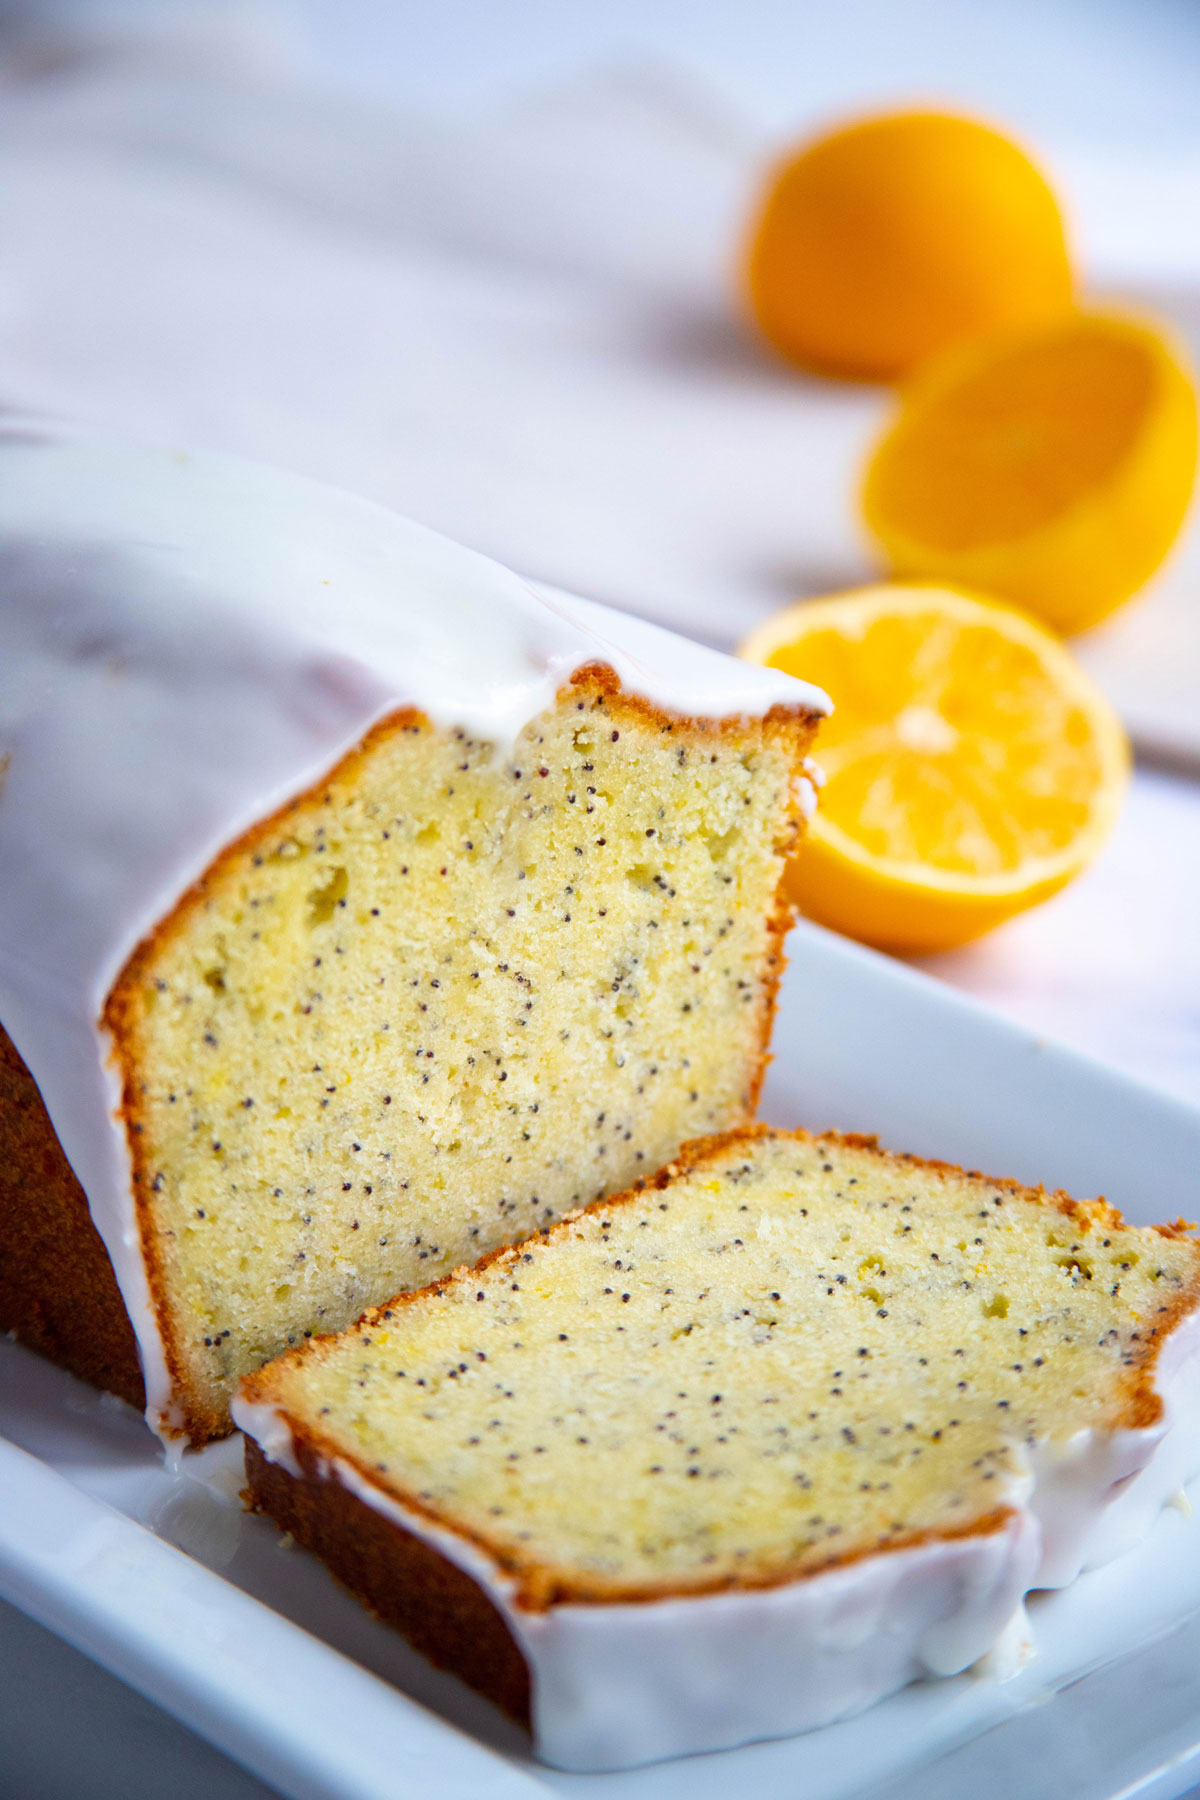 Meyer Lemon Poppy Seed Cake Bakes By Brown Sugar